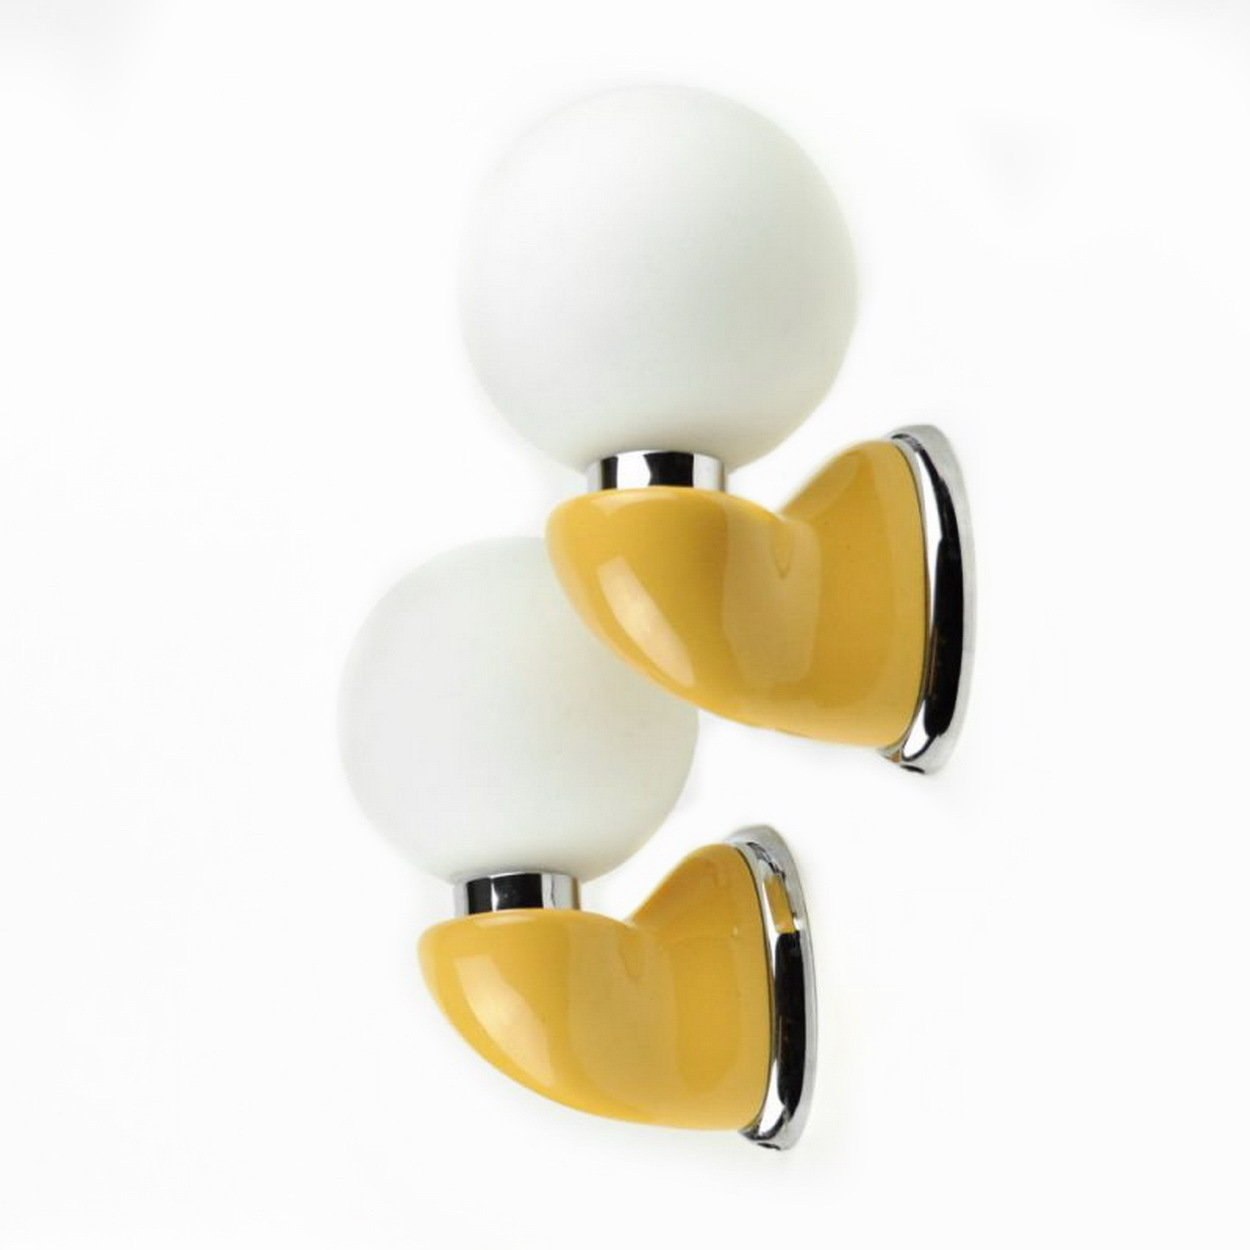 1970s Luigi Colani Wall Sconces Villeroy Boch Yellow Space Age Modernist Lighting